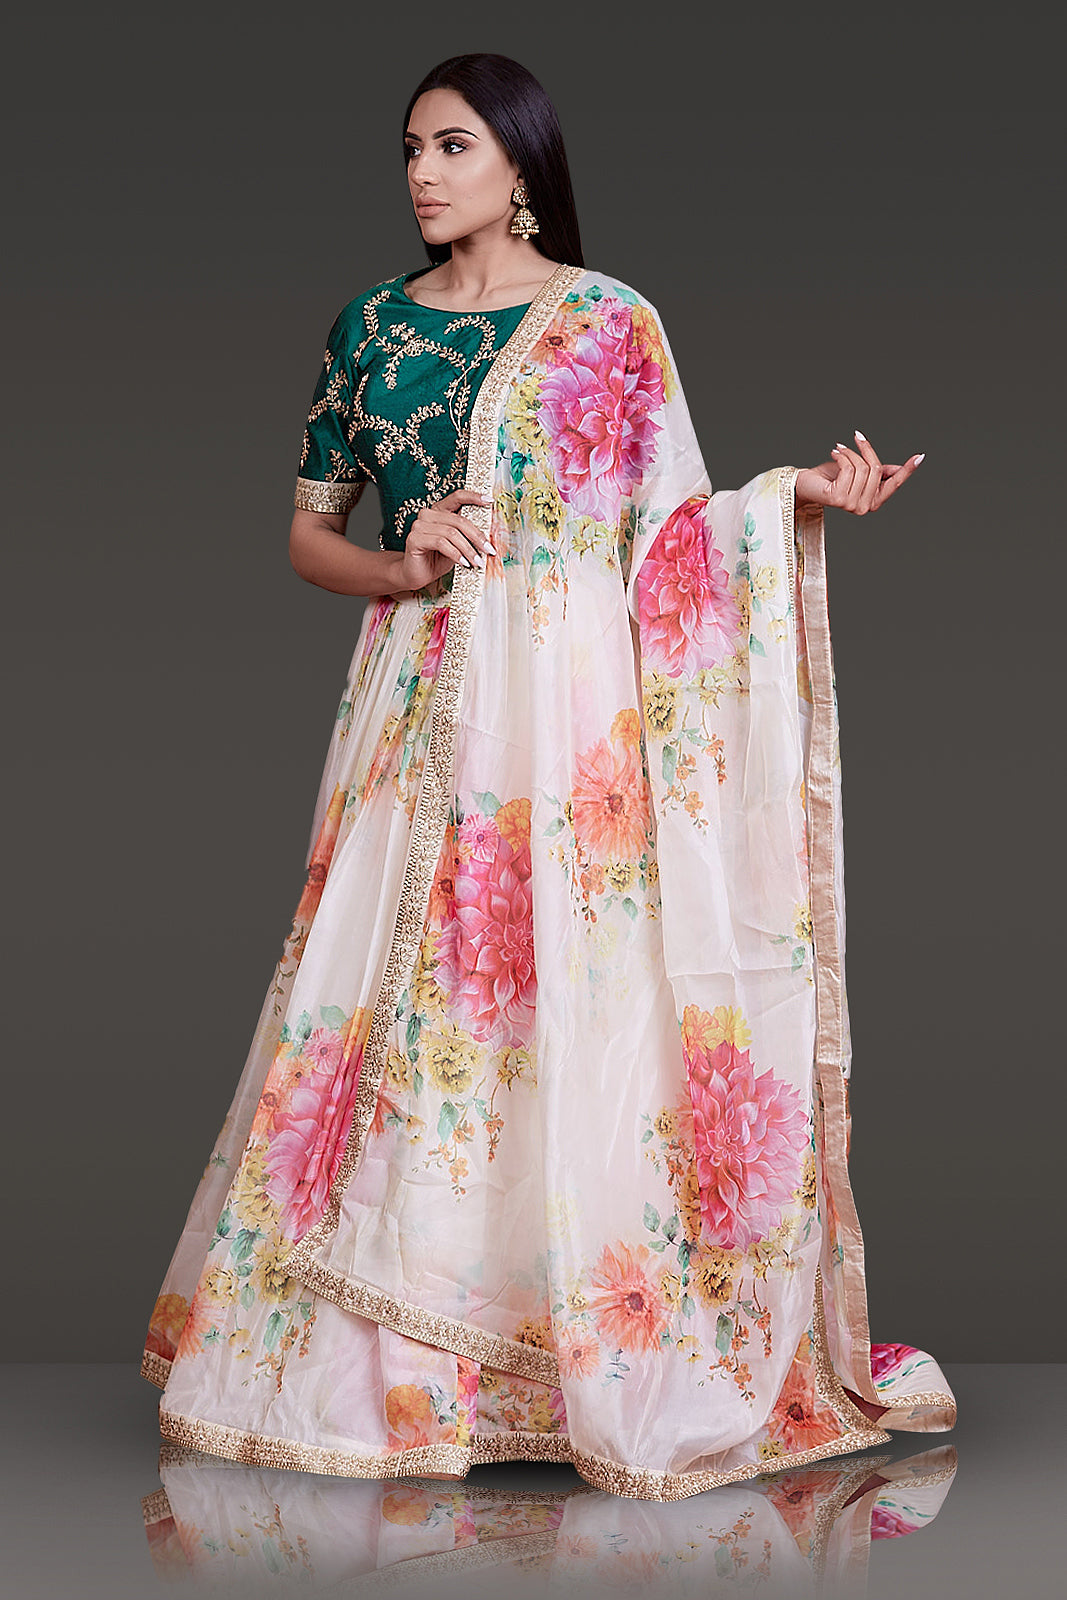 Floral Organza Skirt, Dupatta and Gota Patti Embroiderd Top